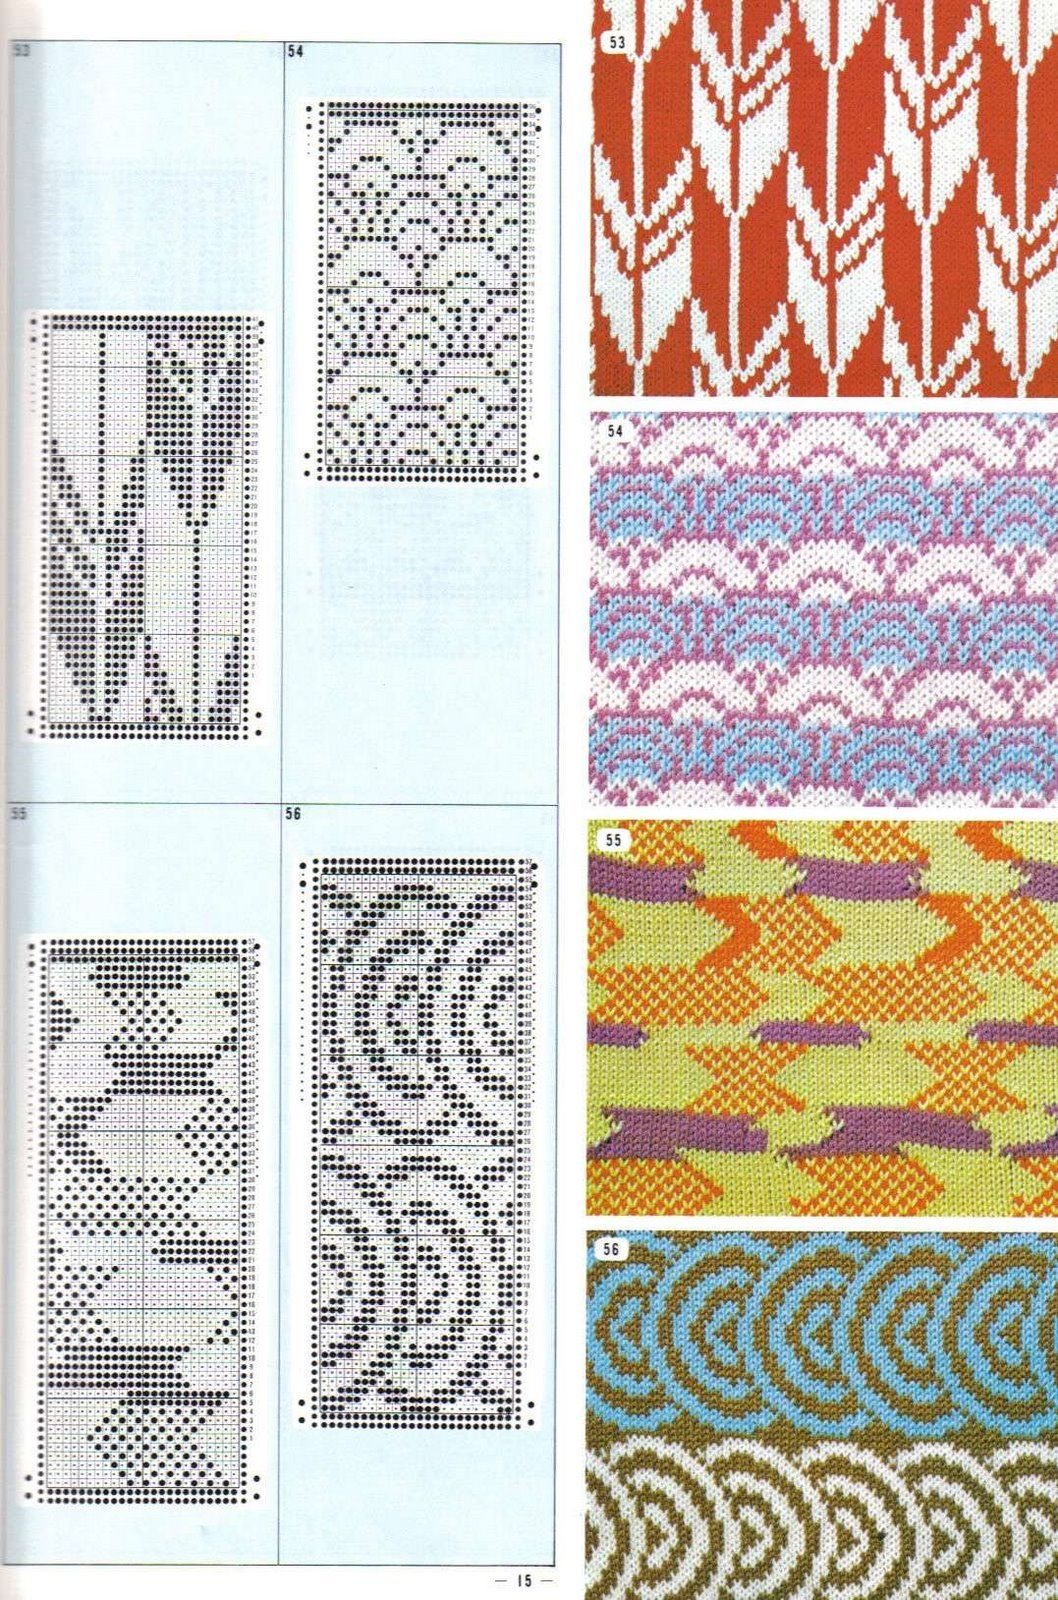 jaquard pattern | Tapestry/fair isle/intarsia | Pinterest | Patterns ...